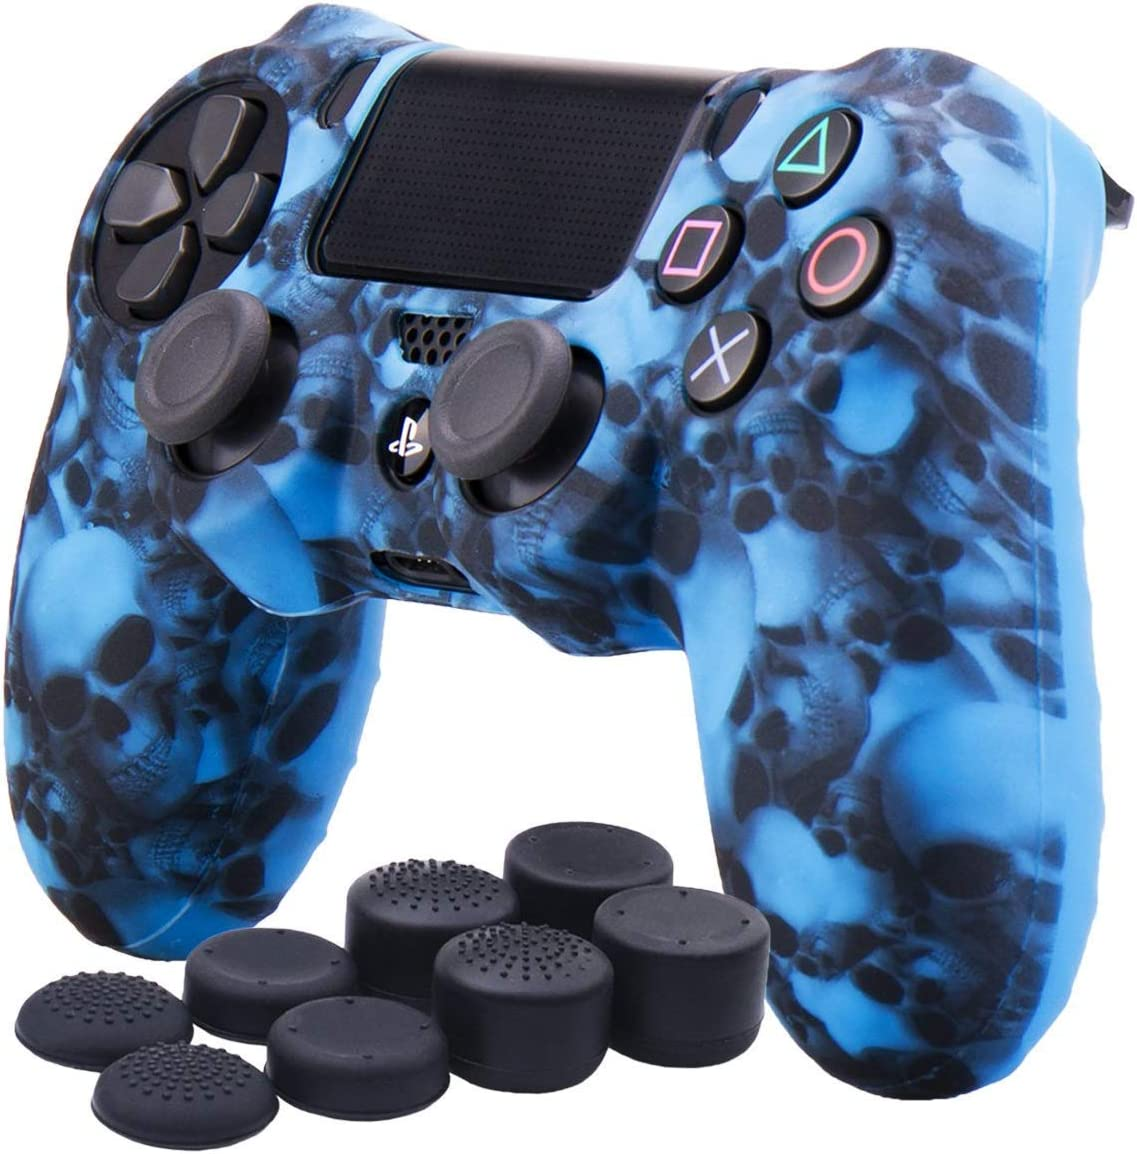 Printing Camouflage Grey Ps4 Controller Skin Dualshock 4 Cover Grip Anti Slip Rubber Silicone Gel Case Protector Sheel For Sony Ps4 Ps4 Slim Ps4 Pro Controller With 8 Thumb Grips Playstation 4 Kolenik Electronics